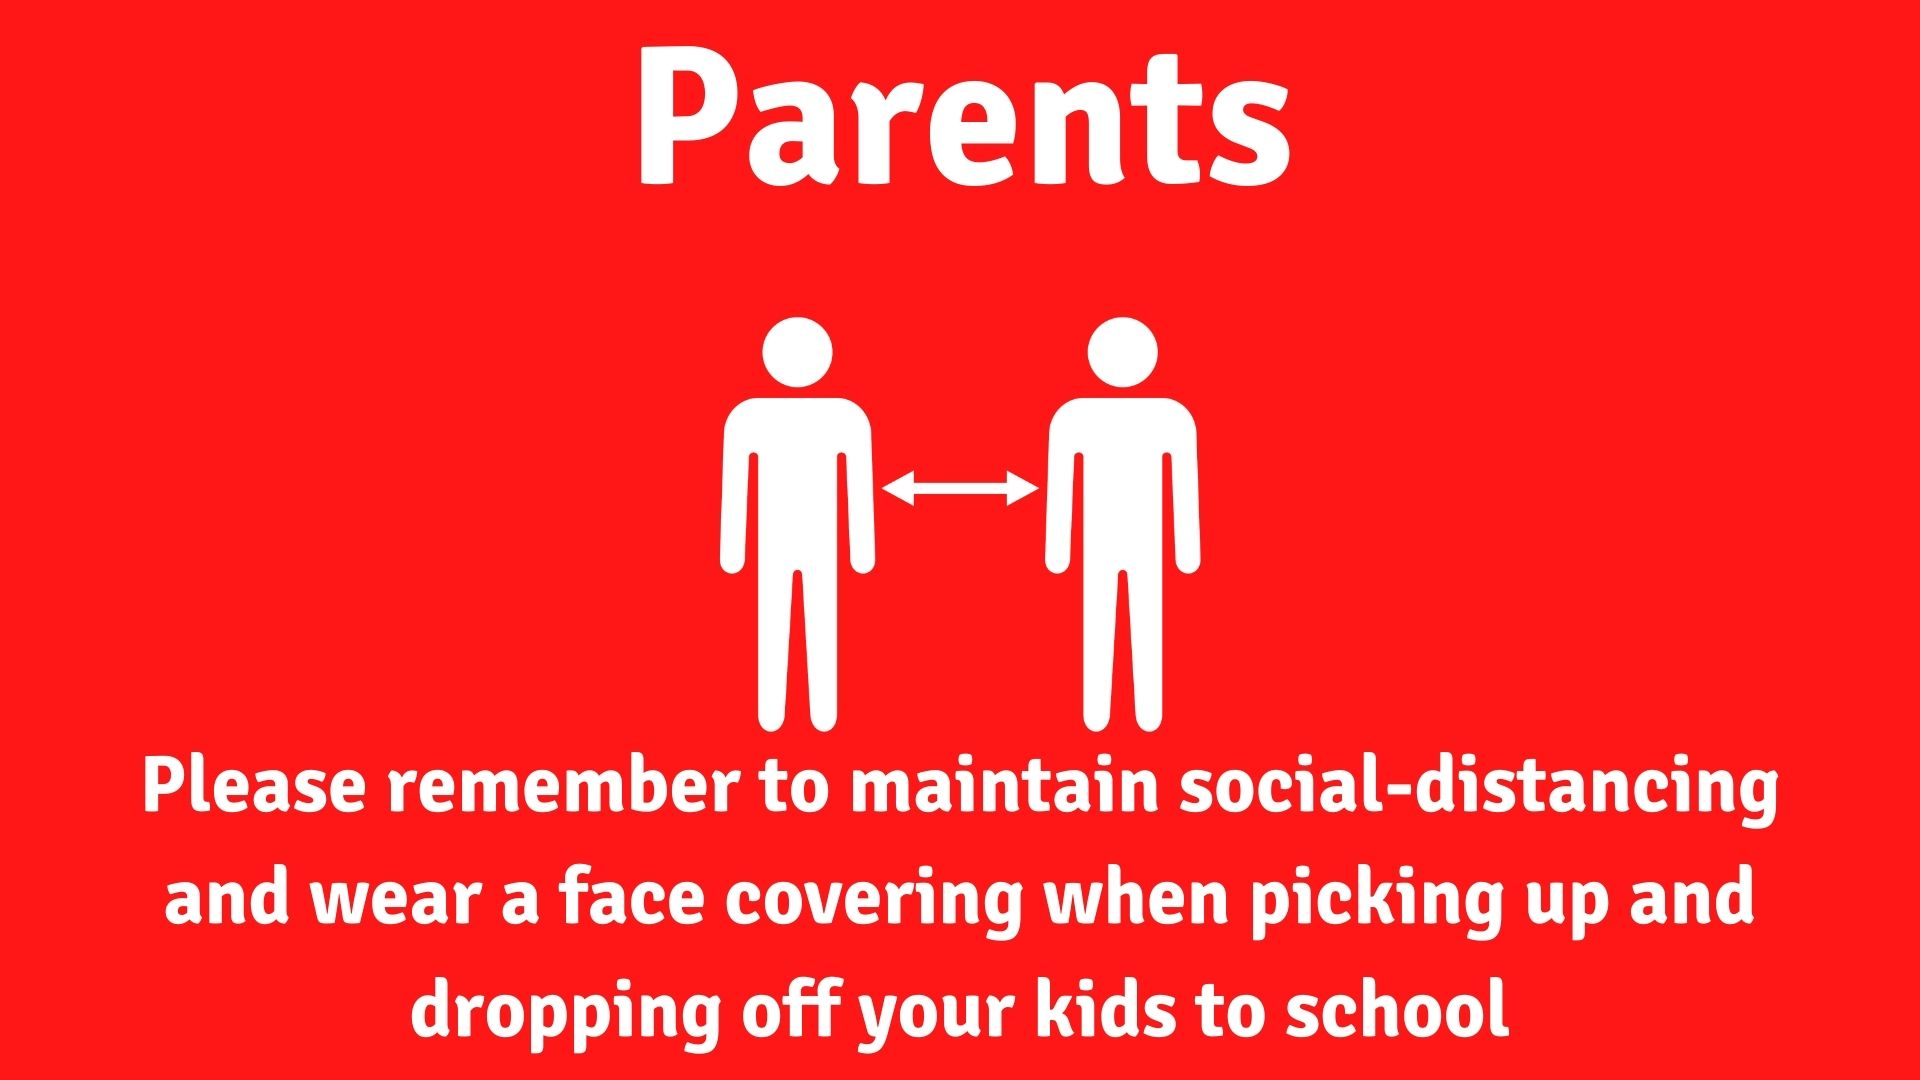 Please remember to maintain social-distancing and wear a face covering when picking up and dropping off your kids to school